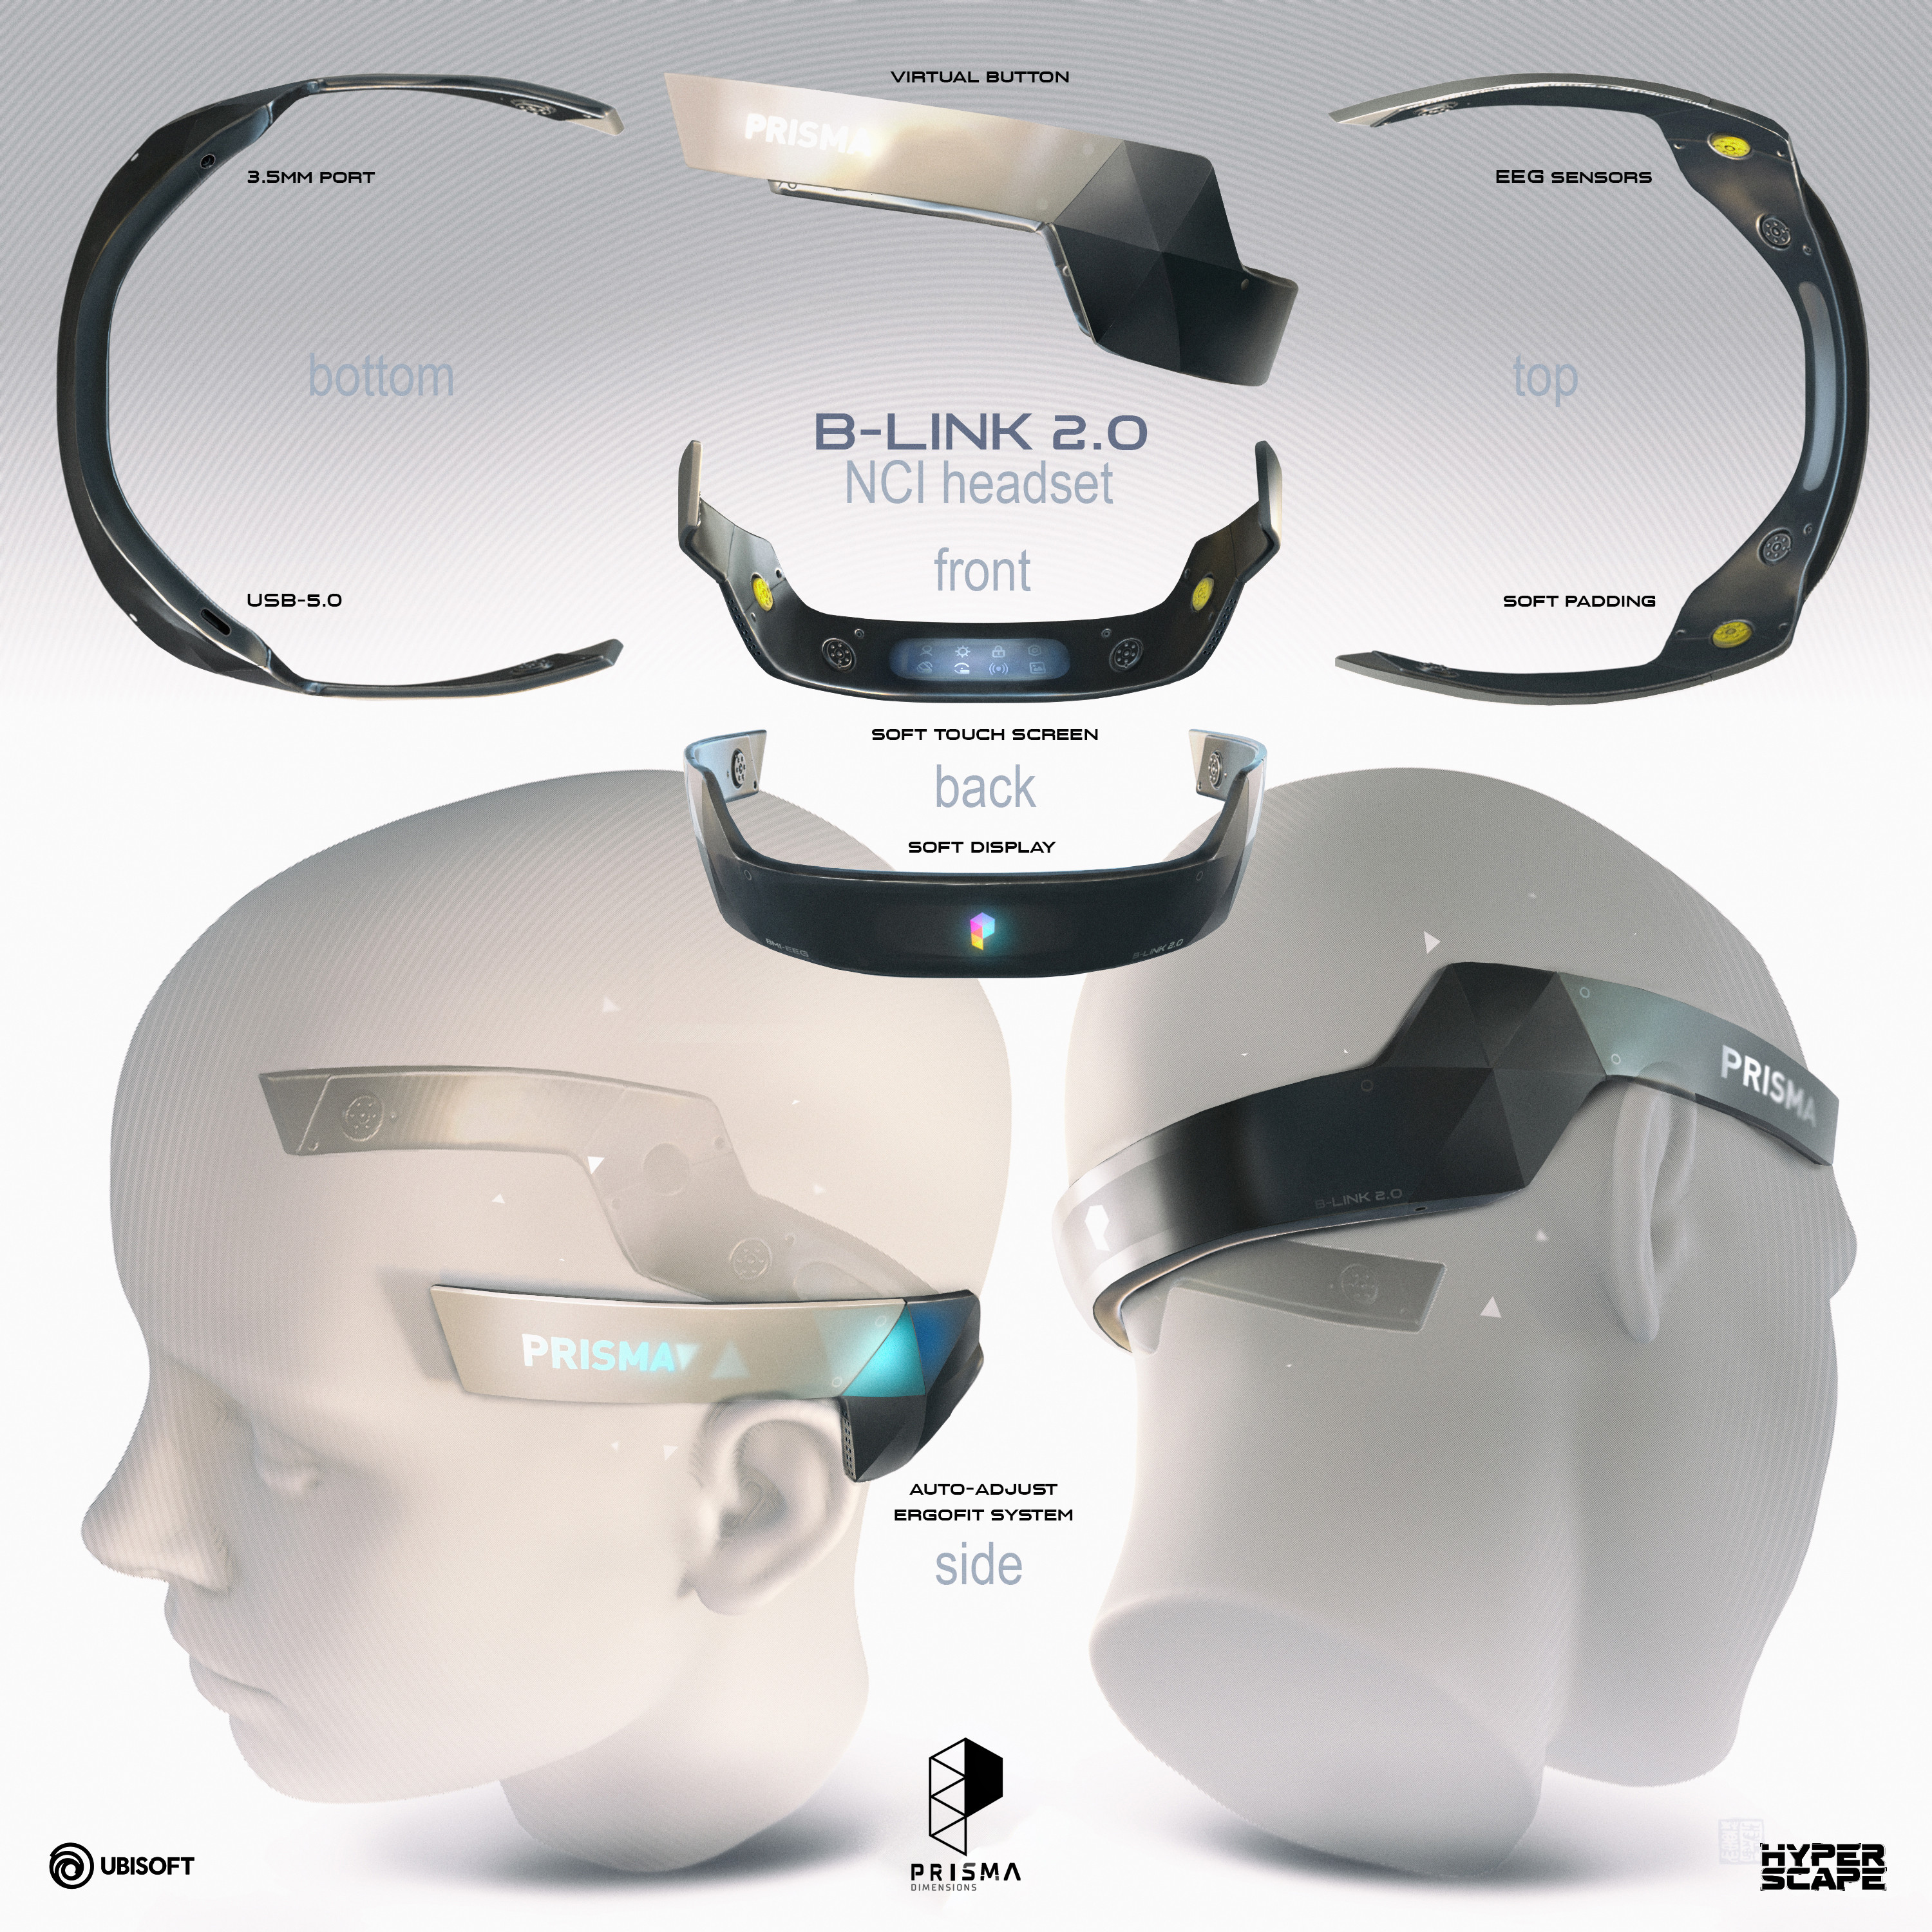 Virtual headset made for the official game trailer (see below)...